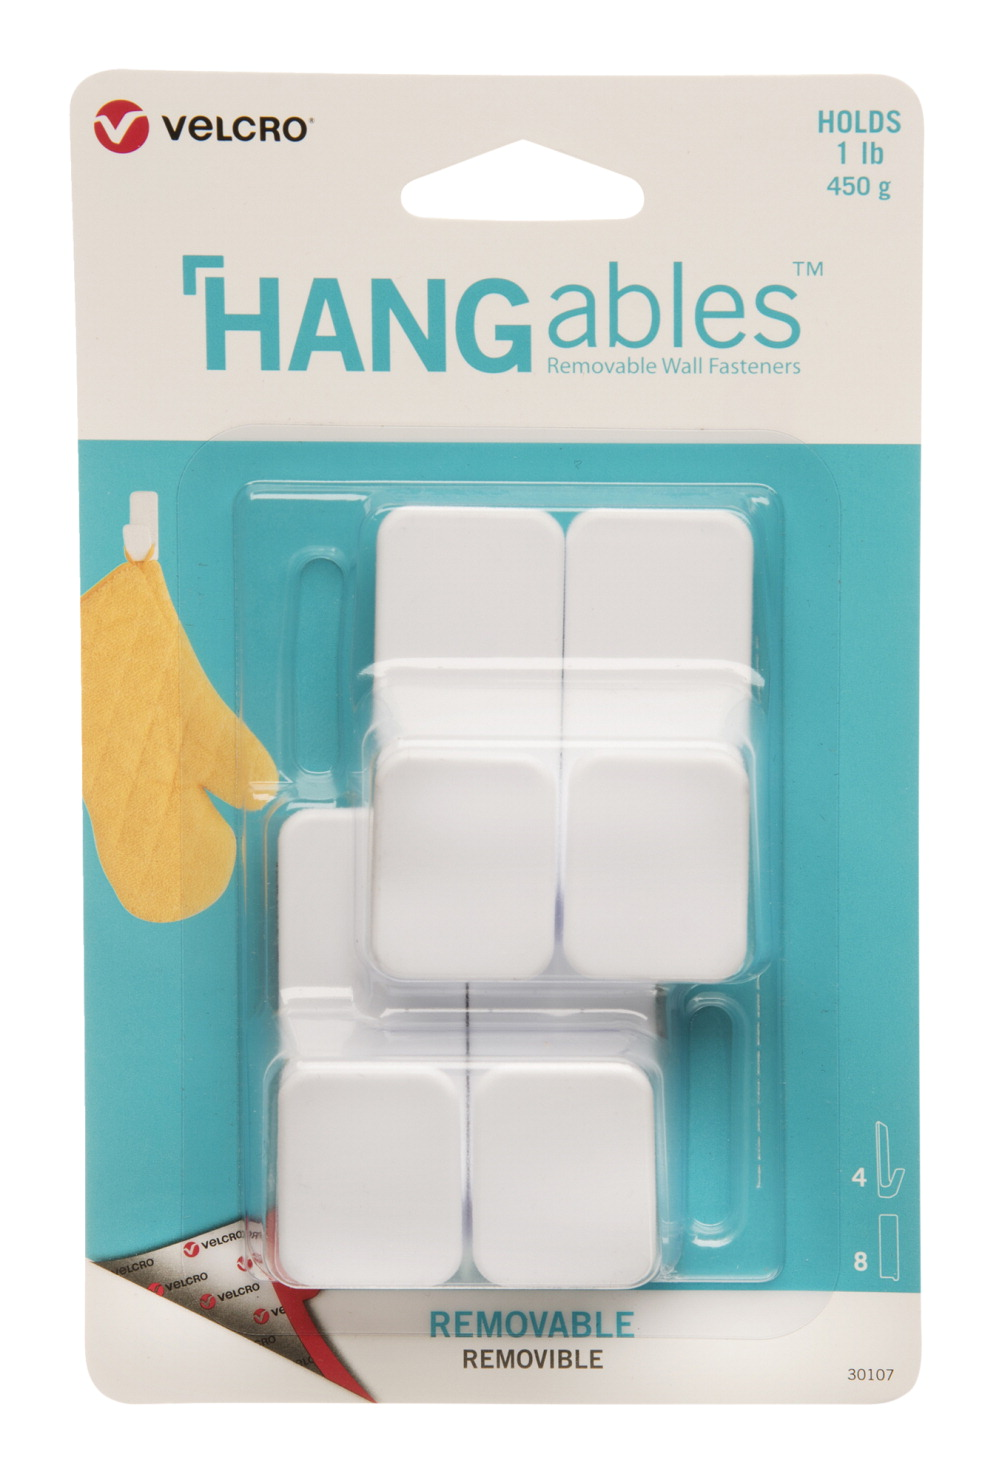 VELCRO Brand HANGables Removable Adhesive Hooks, White, Pack of 4